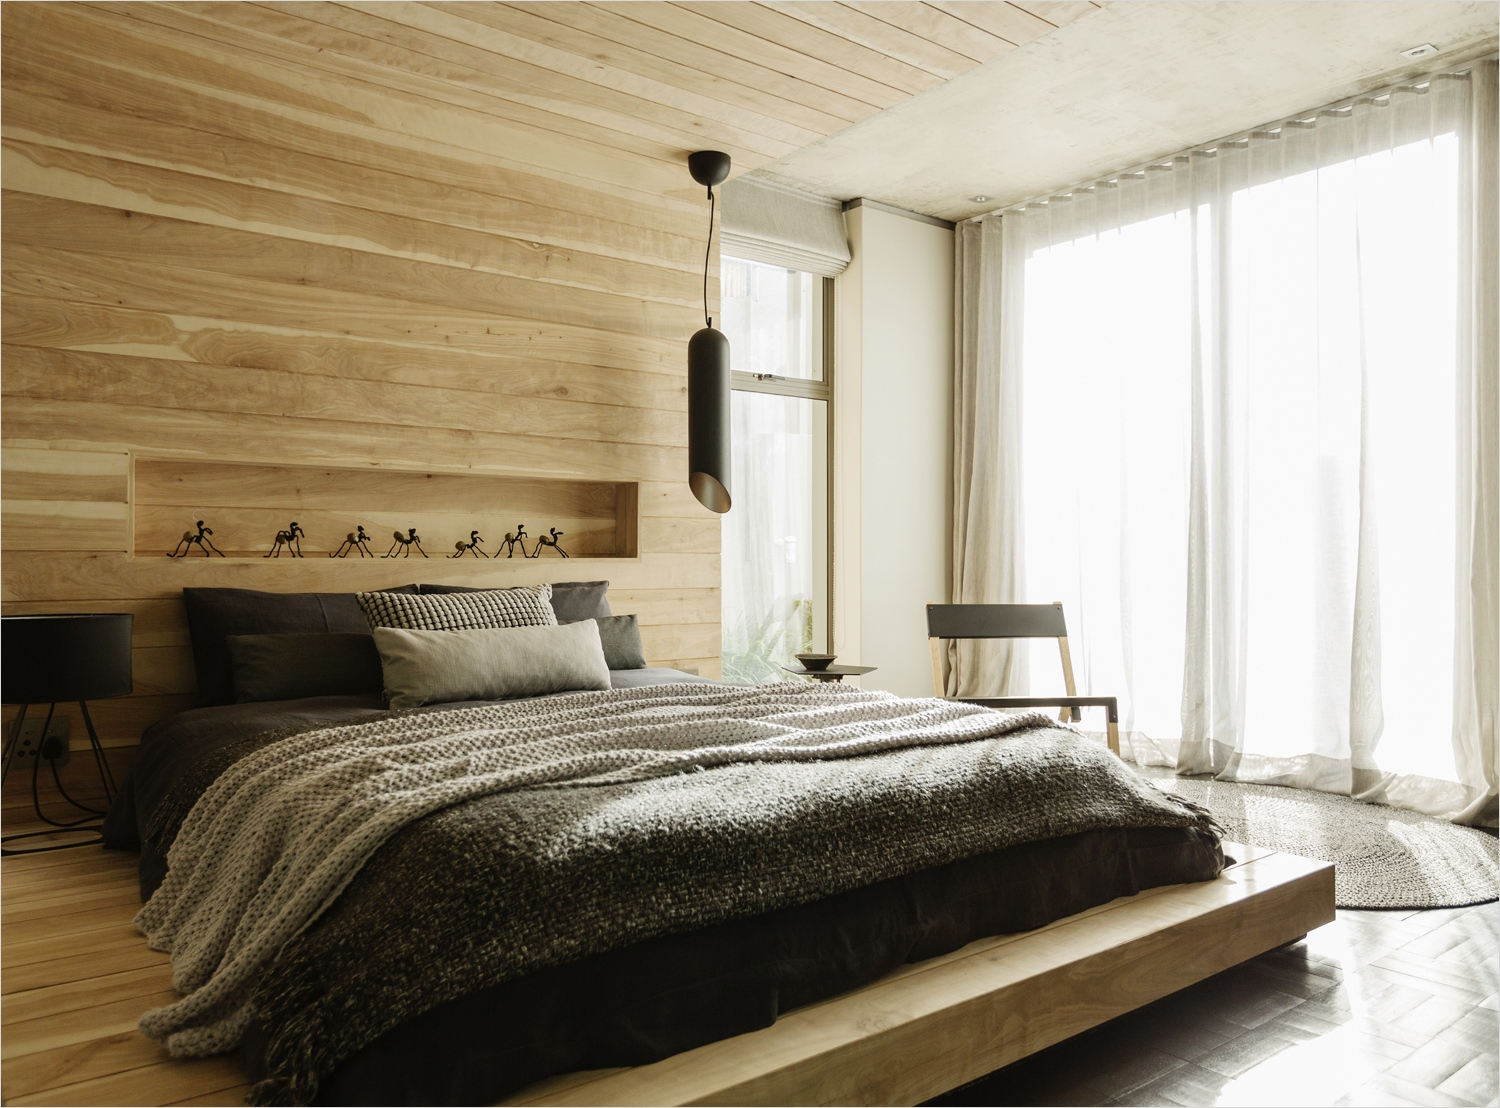 40 Perfect Modern Apartment Decor Ideas 89 Modern Apartment Bedroom Ideas with Wooden Bed and Headboard and Wooden Wall Decor Laredoreads 6